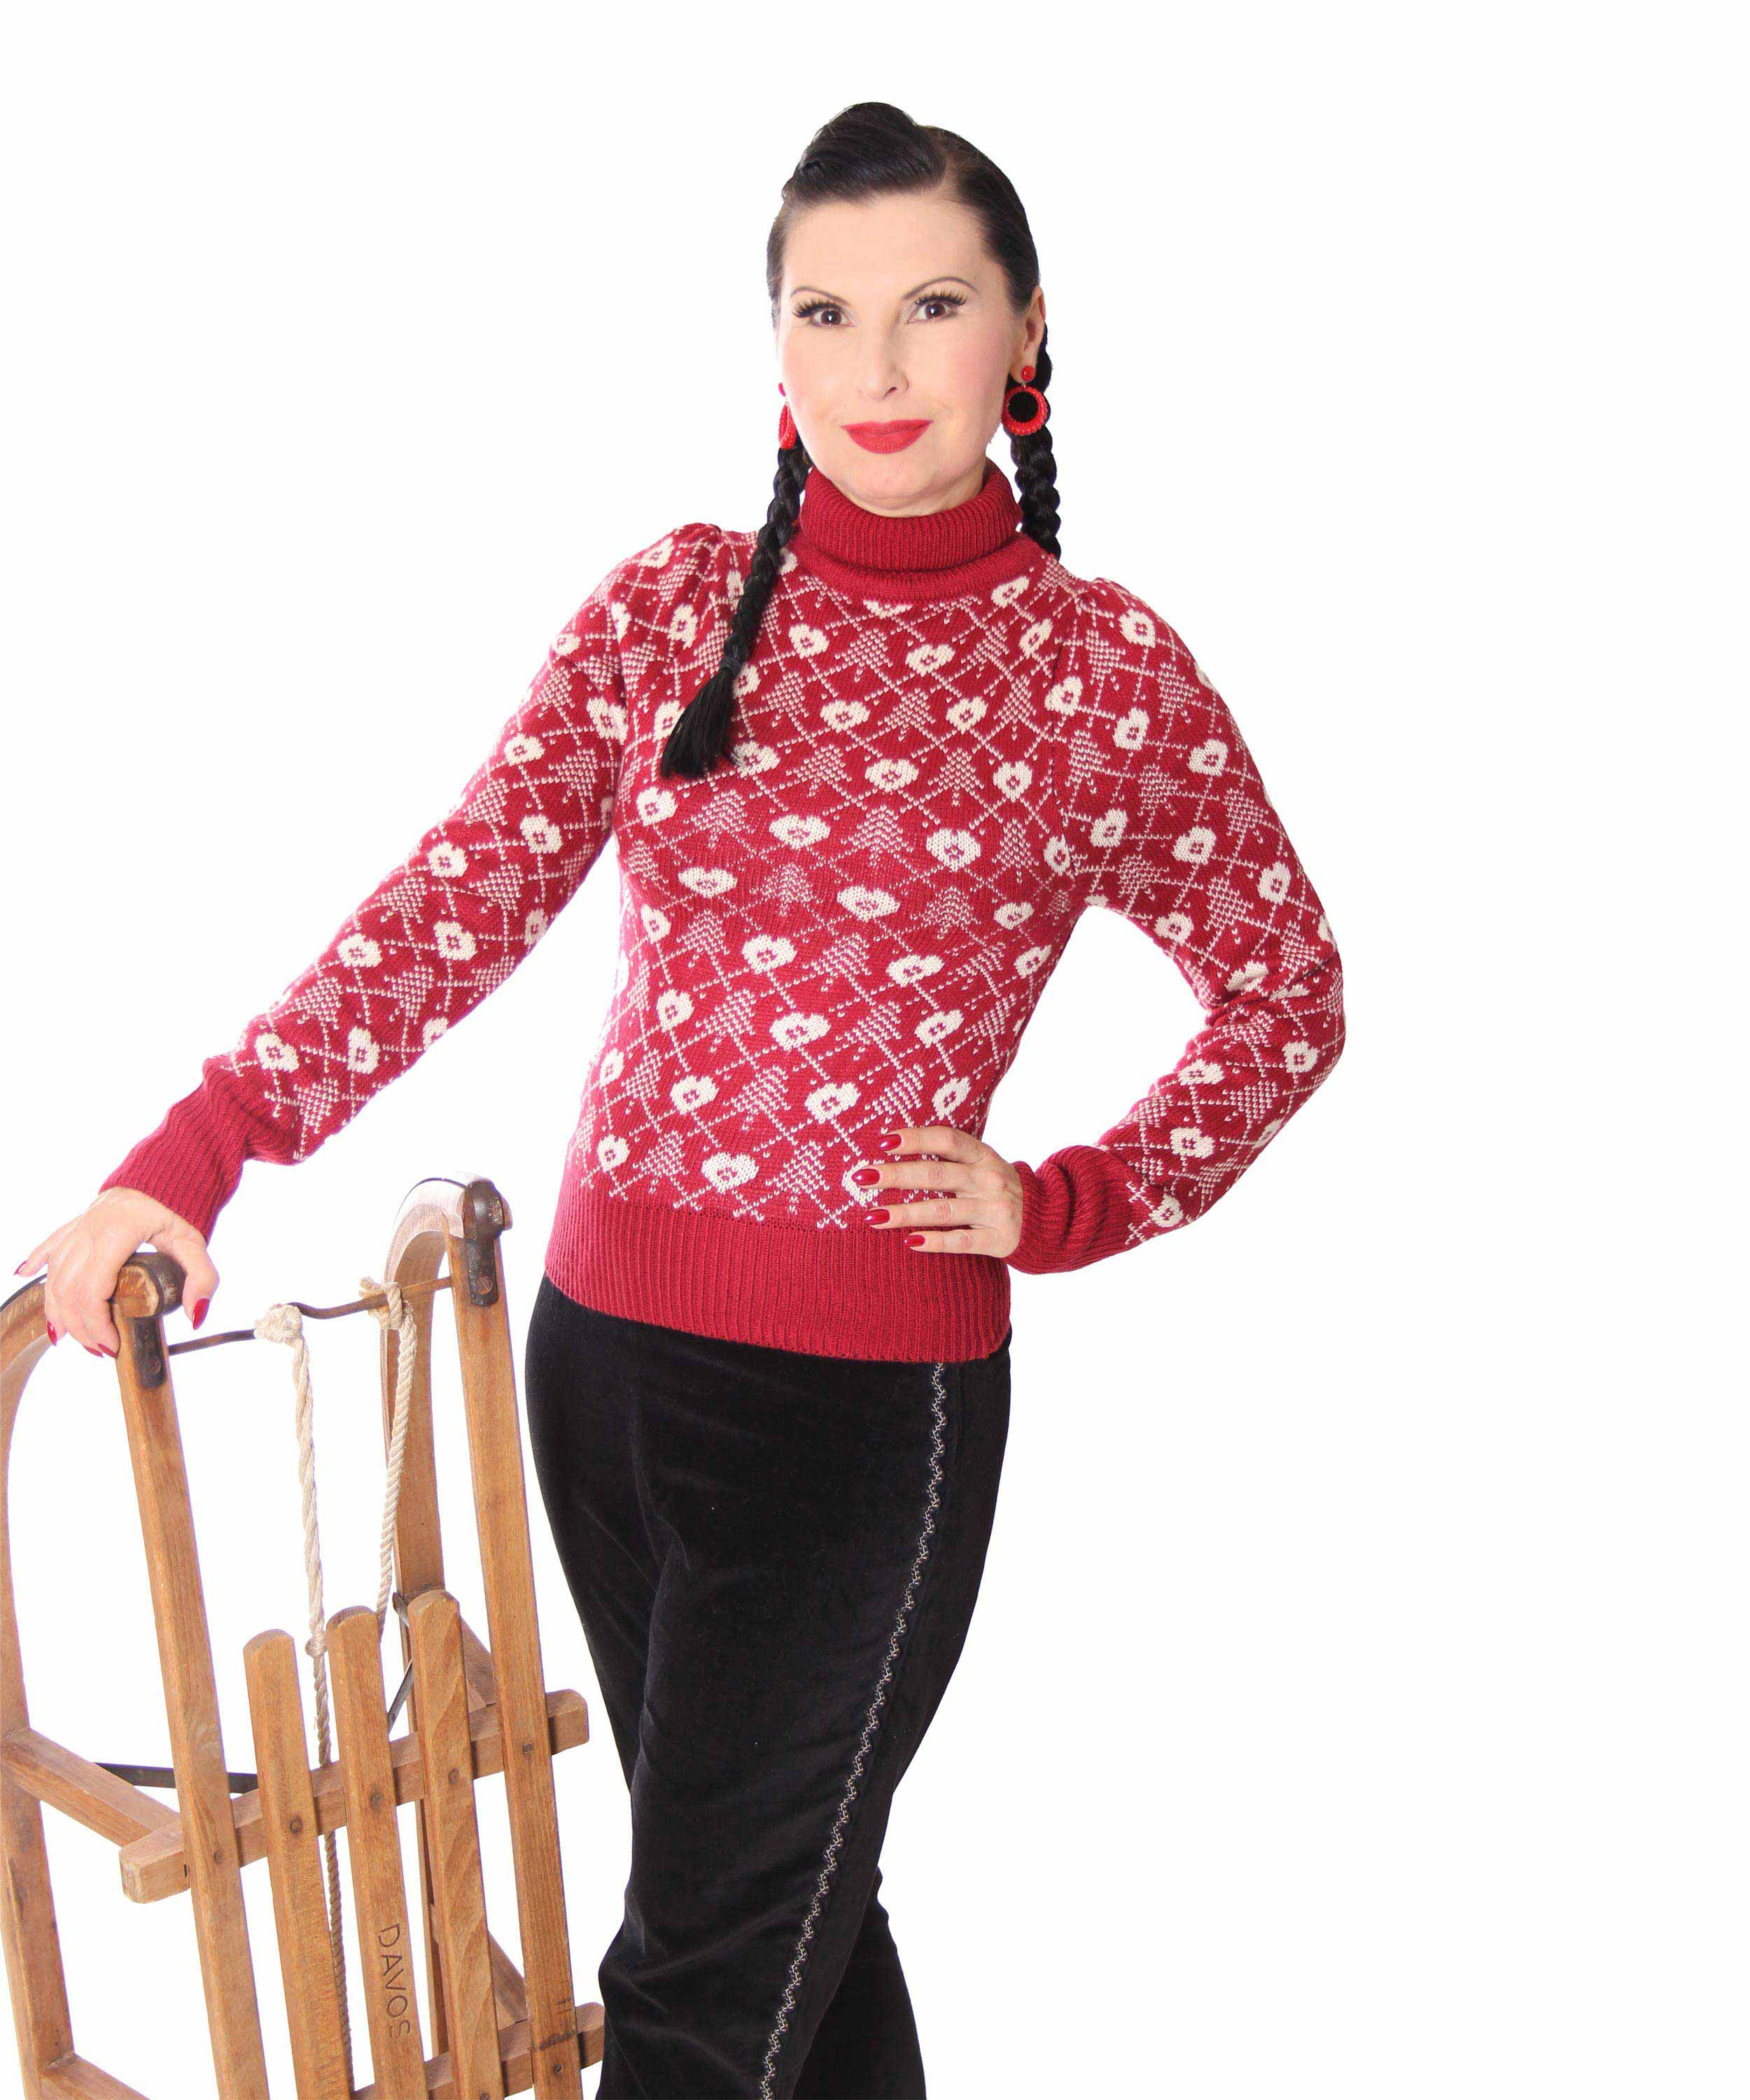 SugarShock 50er vintage retro Argyle Jumper Shirt Pullover Rockabilly Pin Up